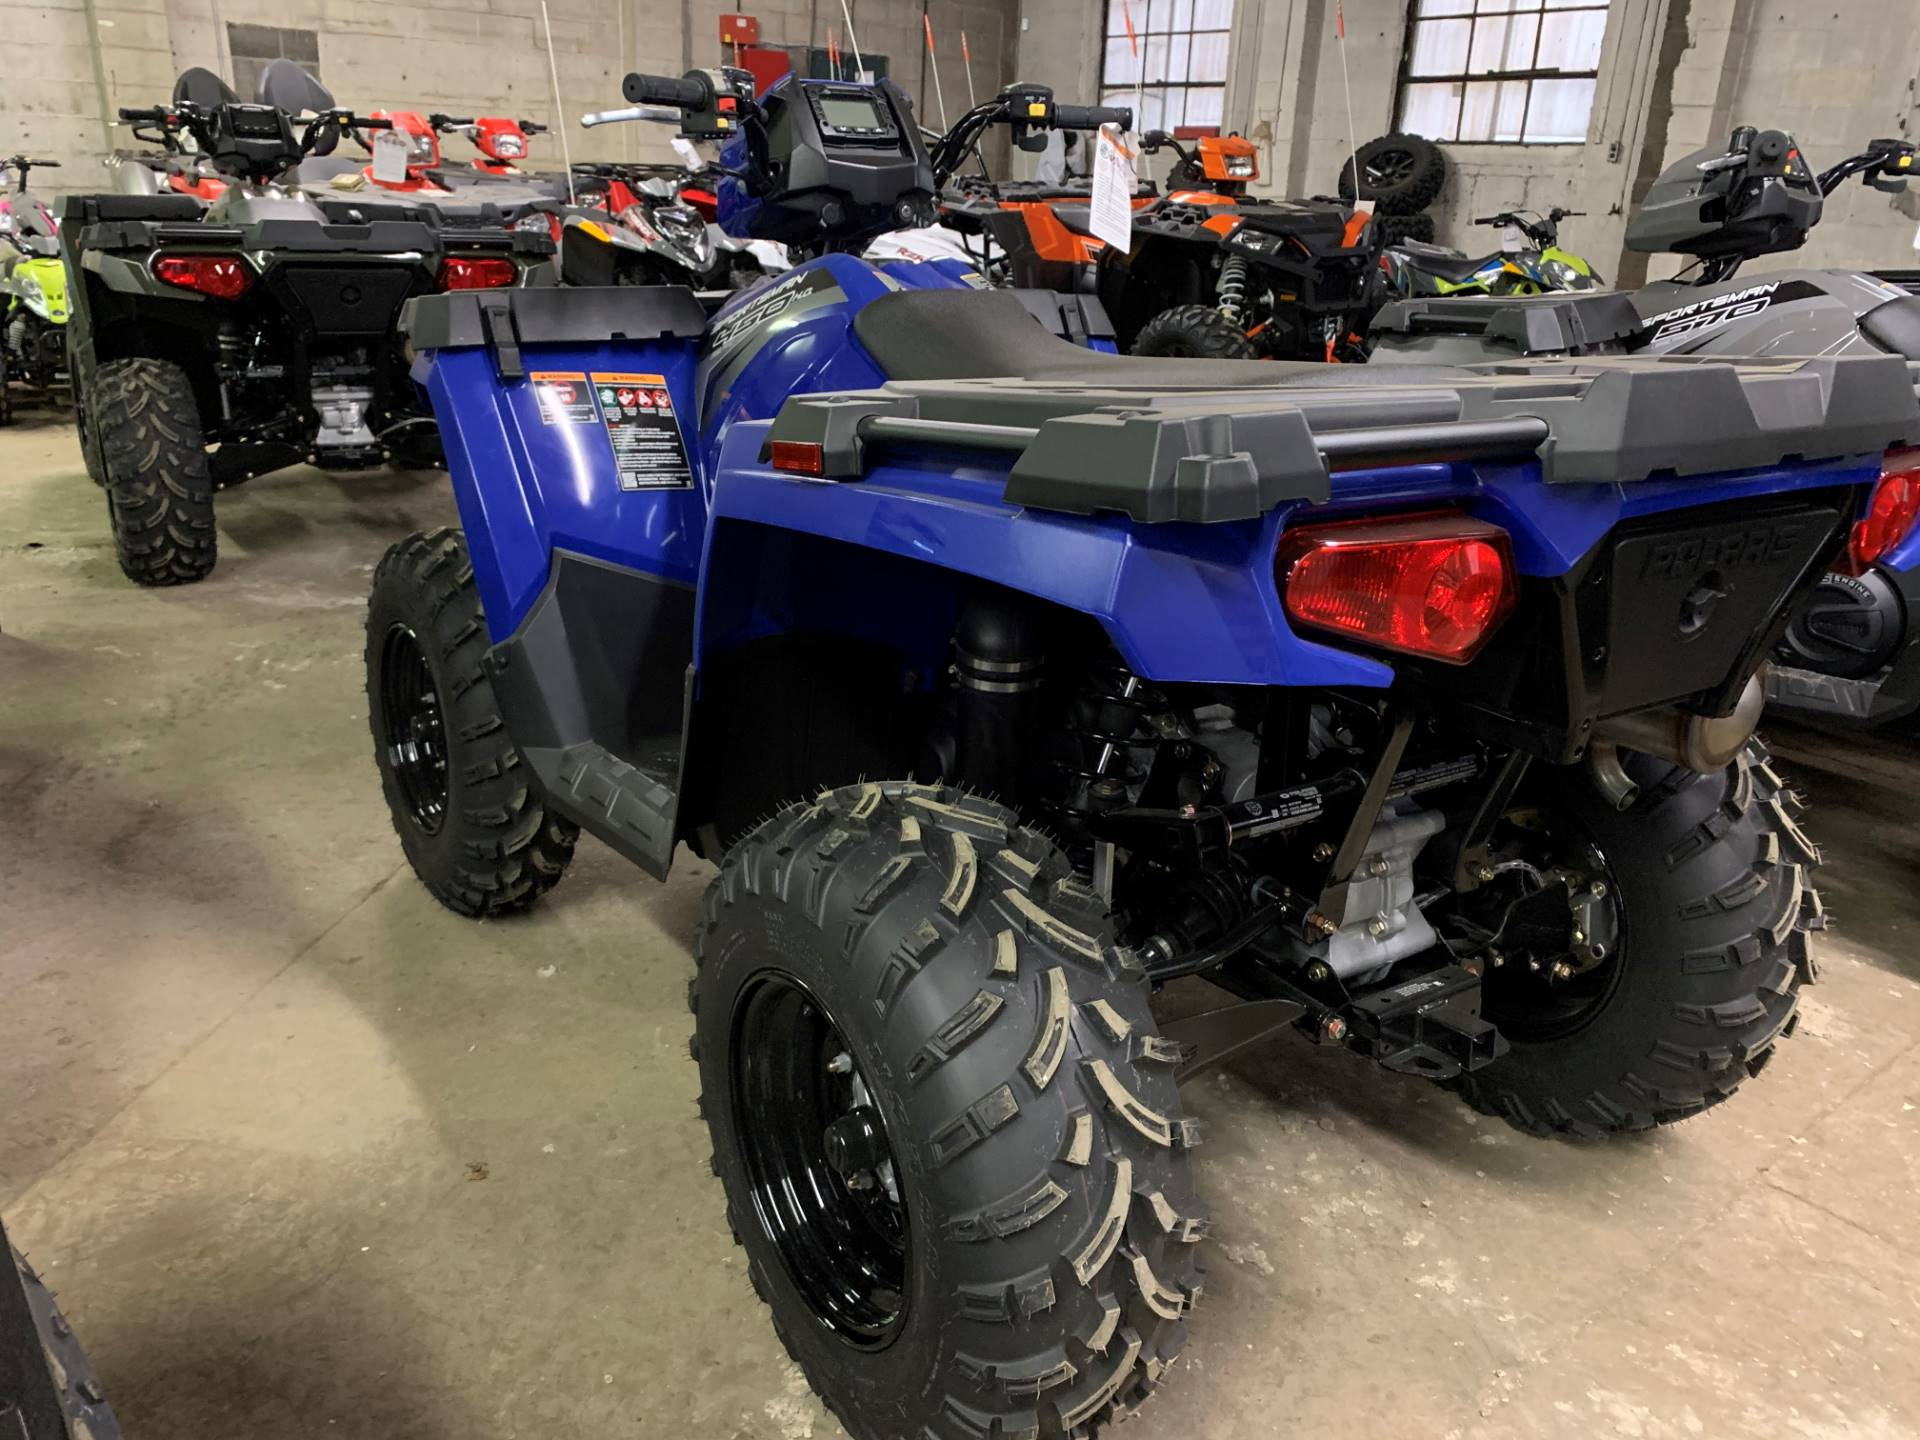 2020 Polaris Sportsman 450 H.O. in Beaver Falls, Pennsylvania - Photo 9